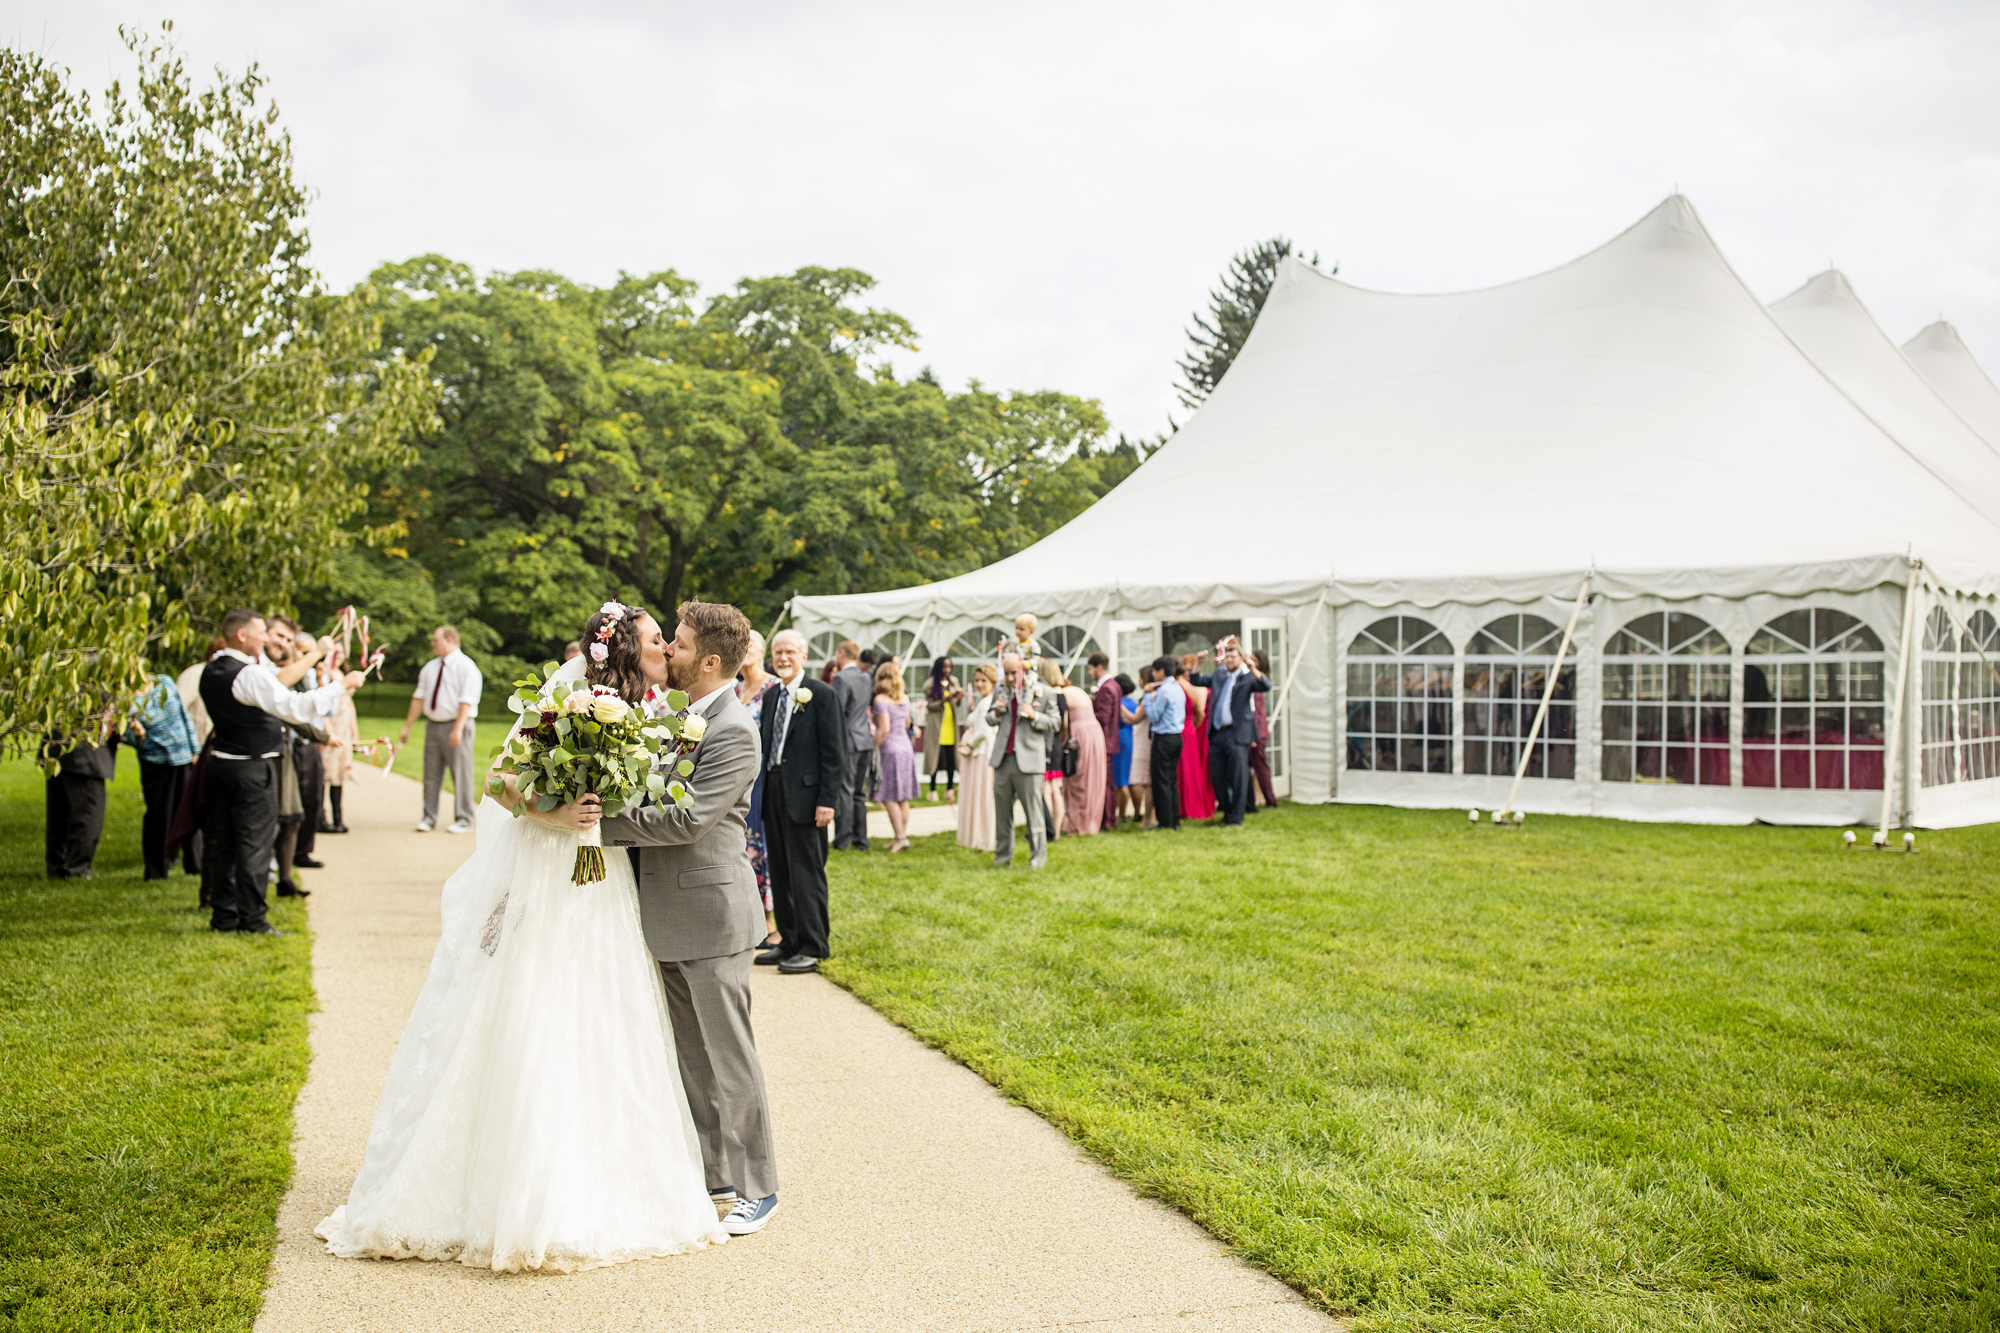 Seriously_Sabrina_Photography_Lisle_Illinois_Morton_Arboretum_Wedding_Day_Gowen143.jpg